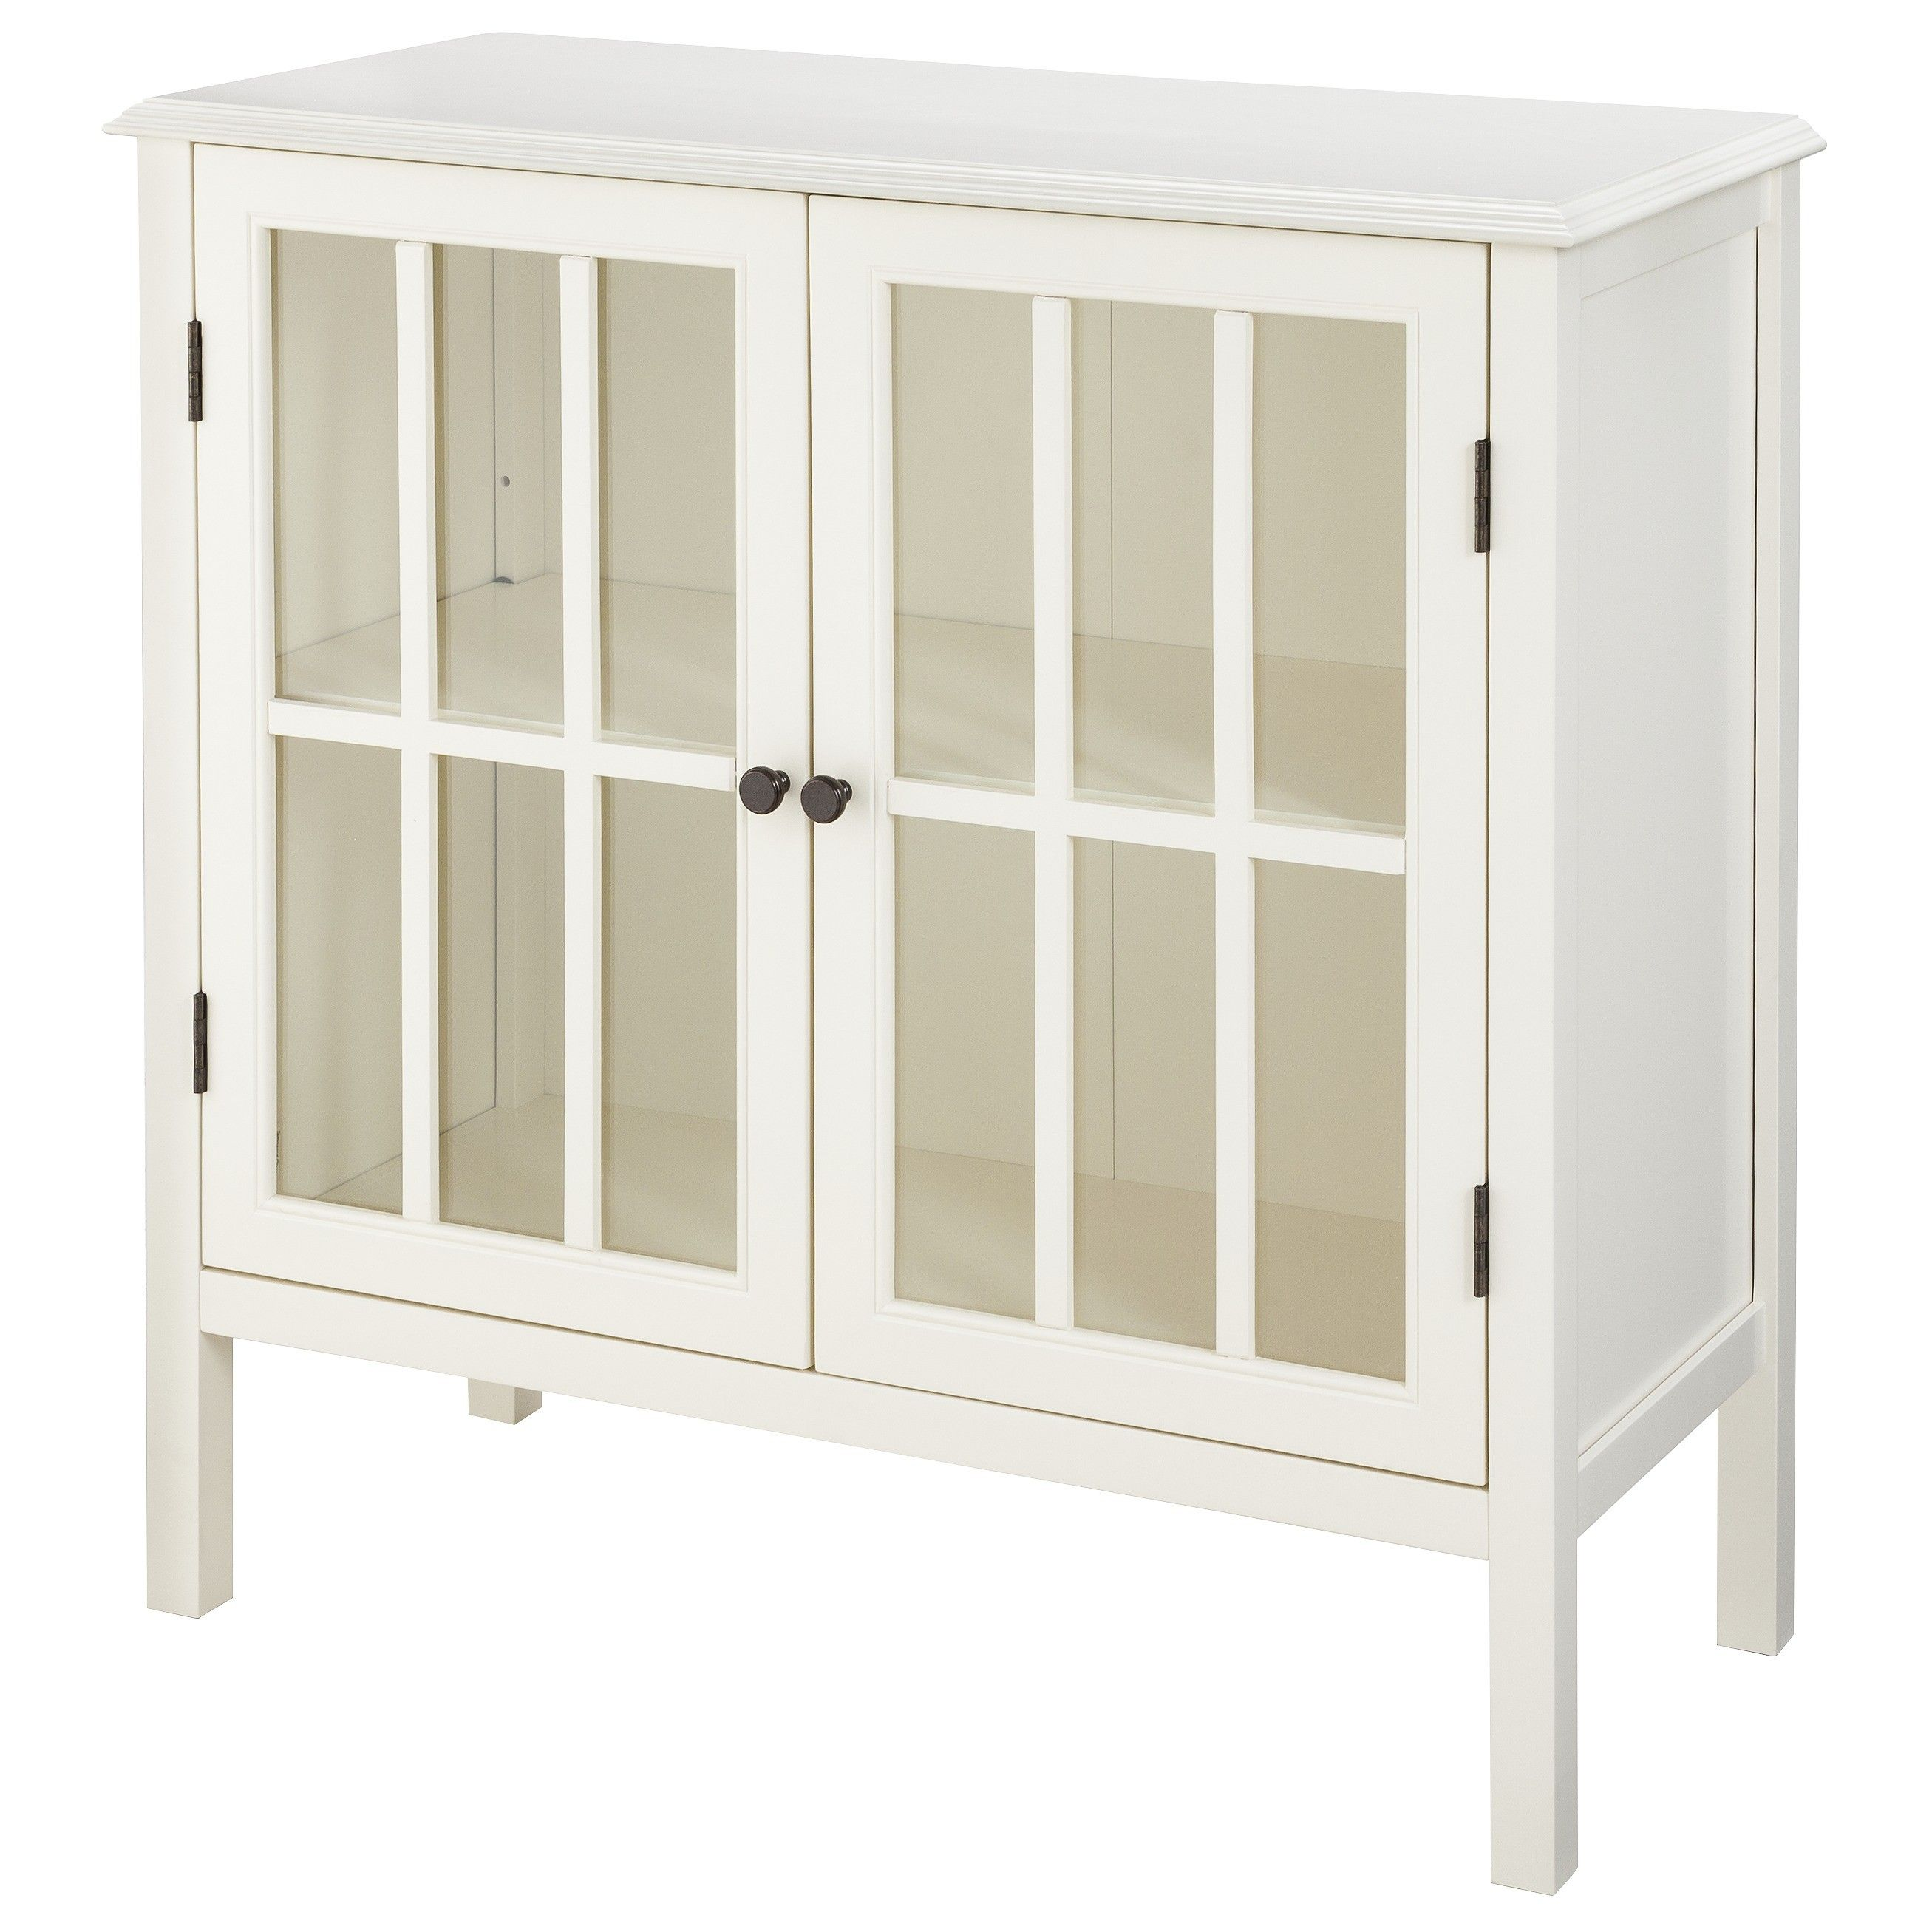 threshold windham accent cabinet target dimensions table weight compartment garden furniture side tables outdoor with umbrella aluminum end marble top america wicker chairs